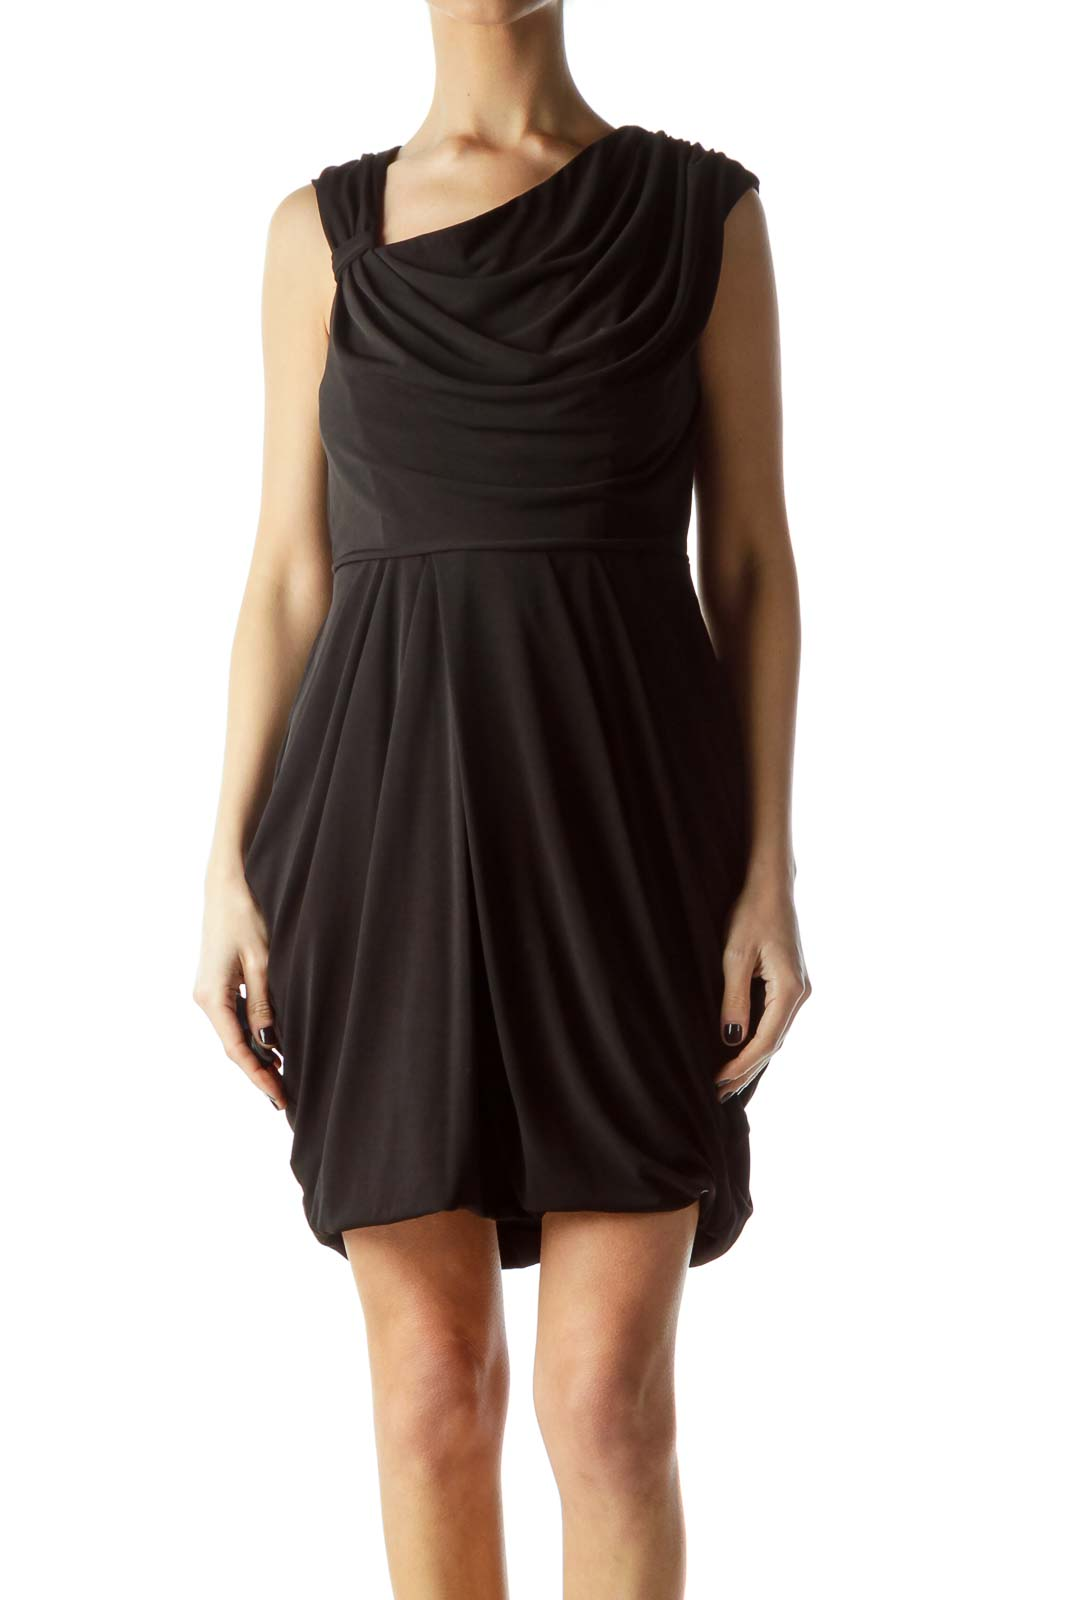 Black Elastic Stretch Cocktail Dress Front